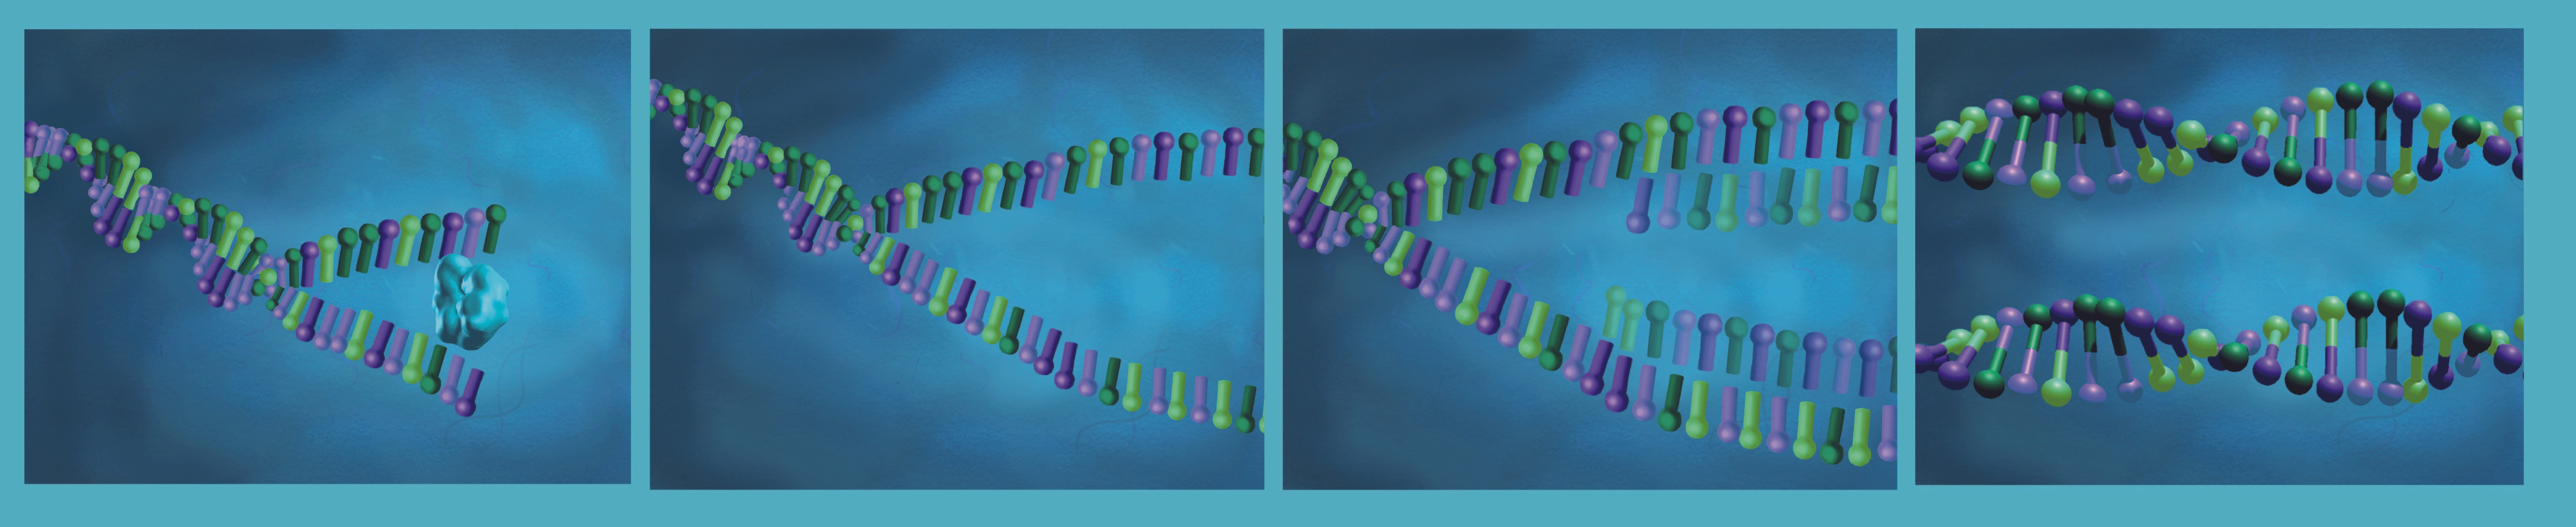 DNA Replication Panel for an Interactive Application